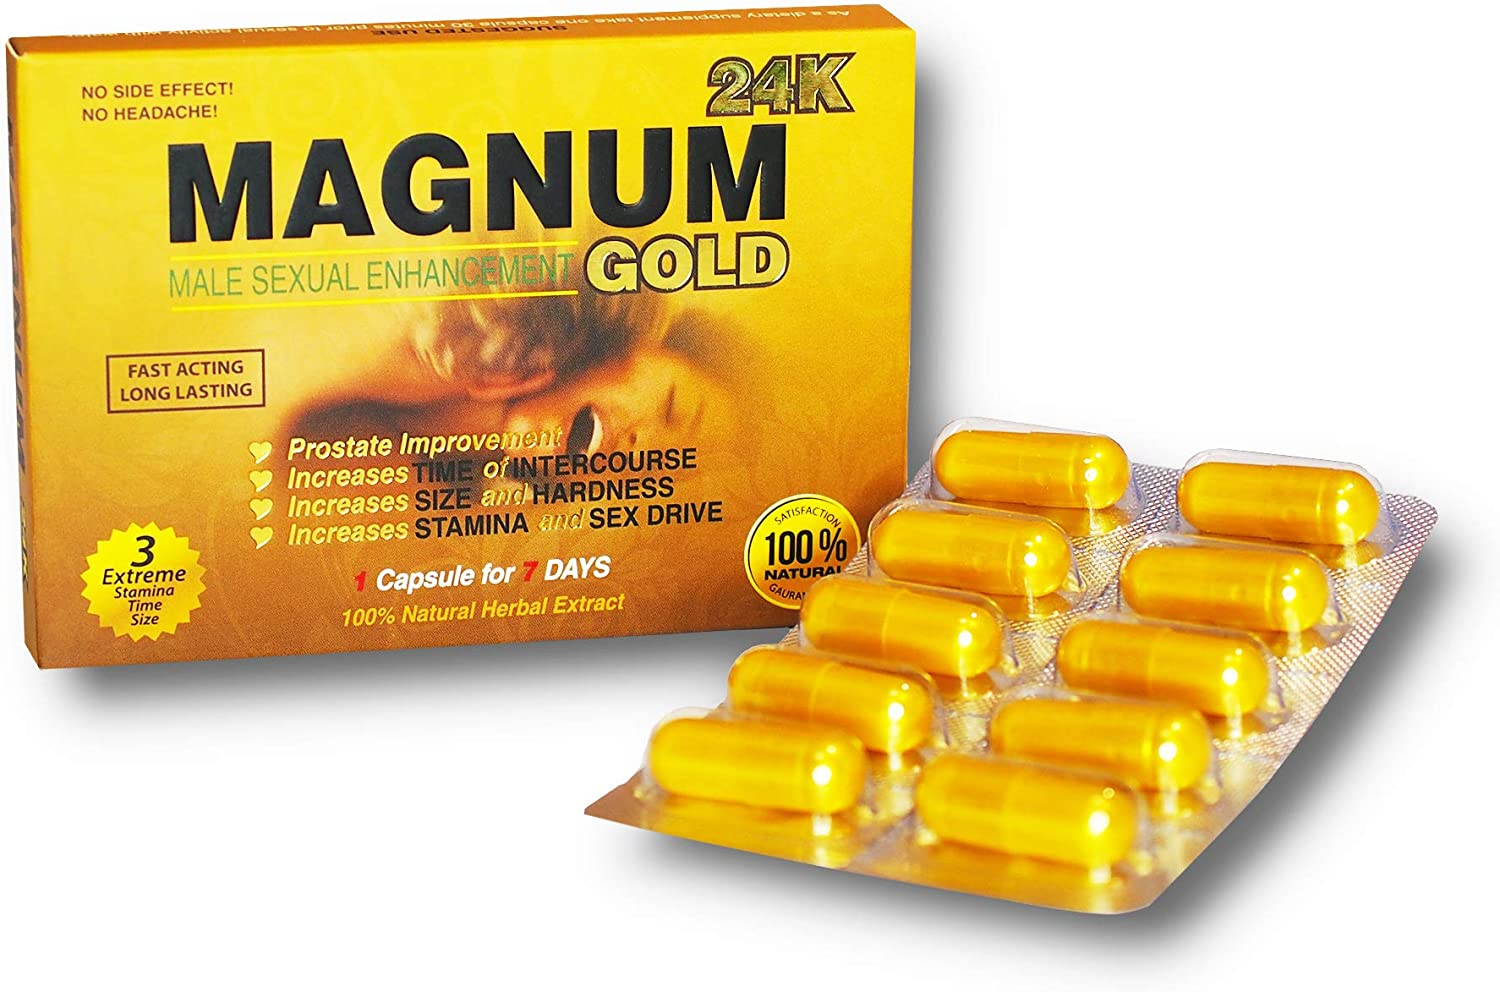 Magnum Gold 24k 10 Capsules, Natural Male Energy Supplement, Natural Amplifier for Energy, 10 Gold Capsules: Health & Personal Care